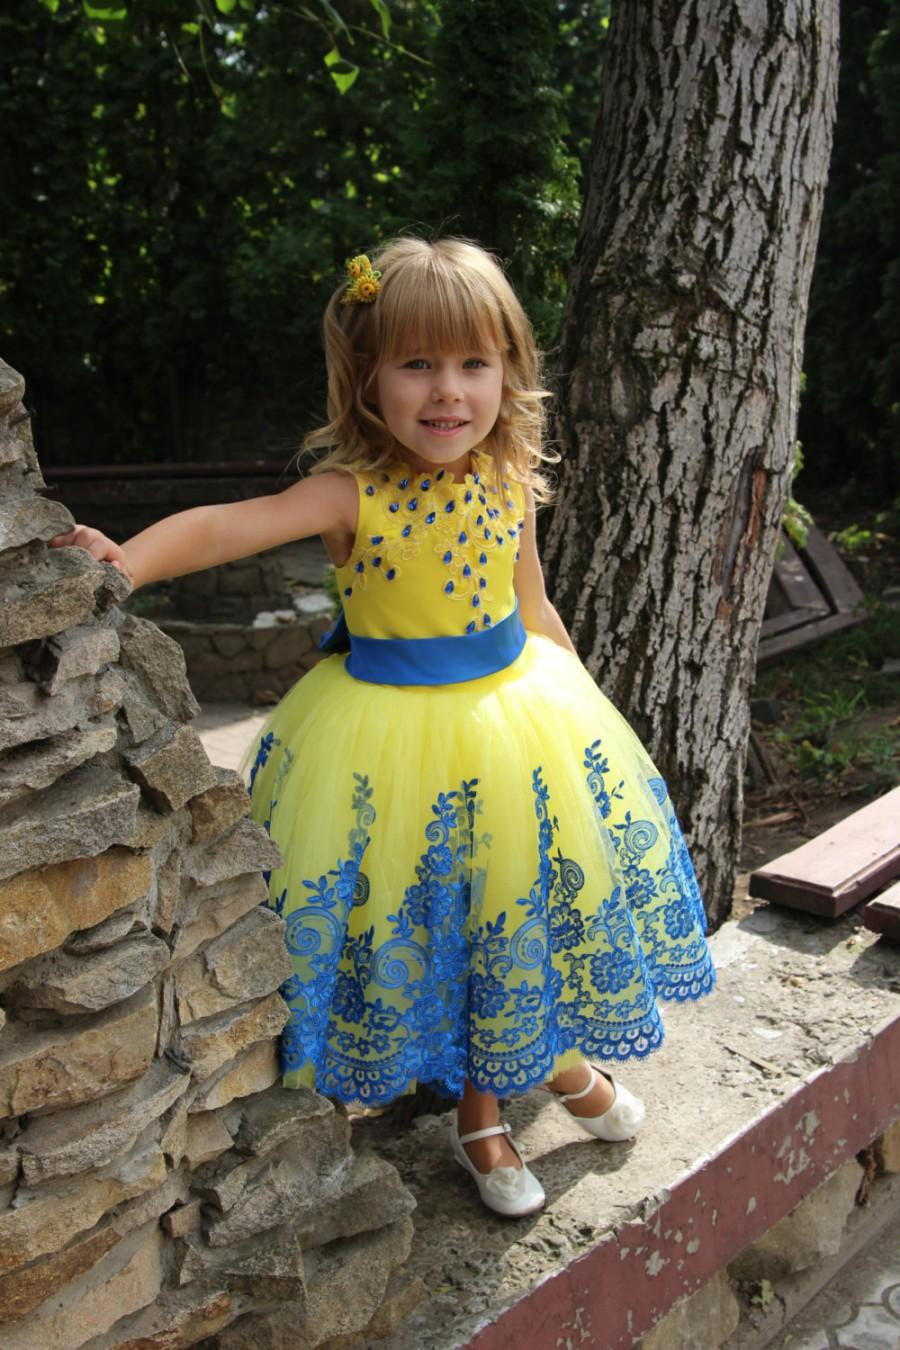 abb69685d5f81 Lace Blue Yellow Flower Girl Dress - Birthday Wedding Party Holiday ...